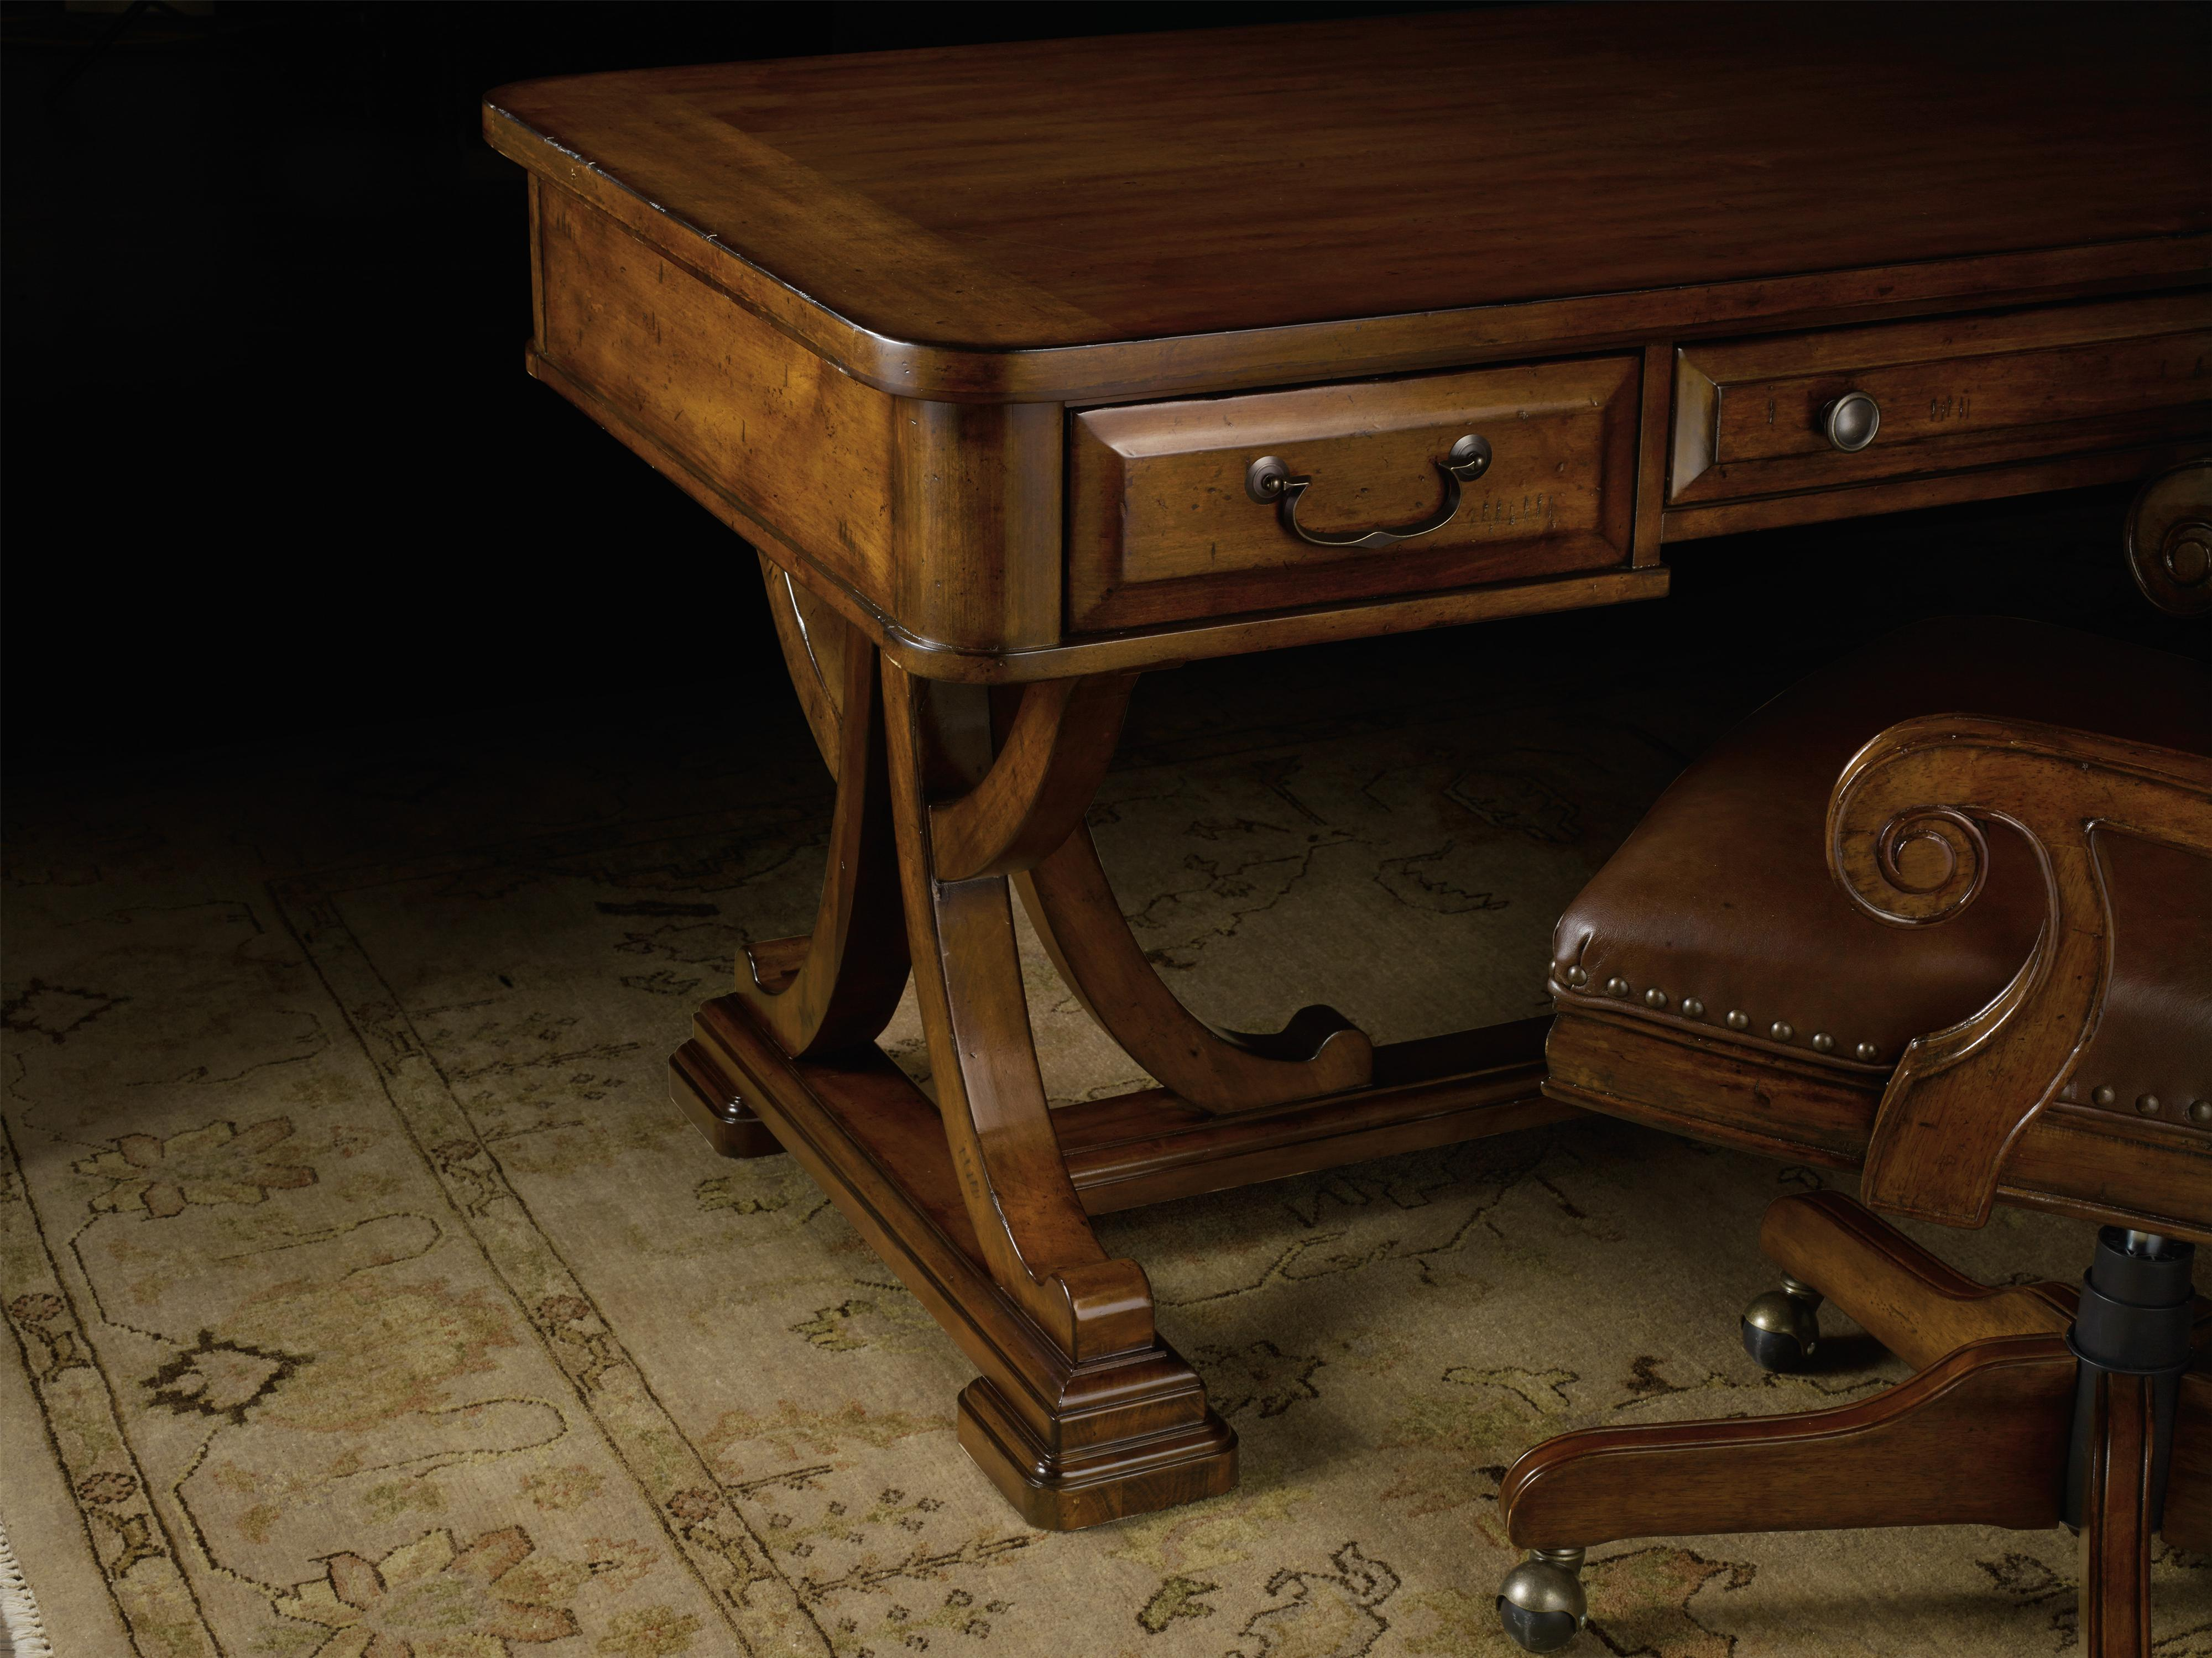 traditional writing desk Save on traditional desks at bellacor shop furniture with confidence & price match guarantee hundreds of home office furniture brands ship free sale ends soon.